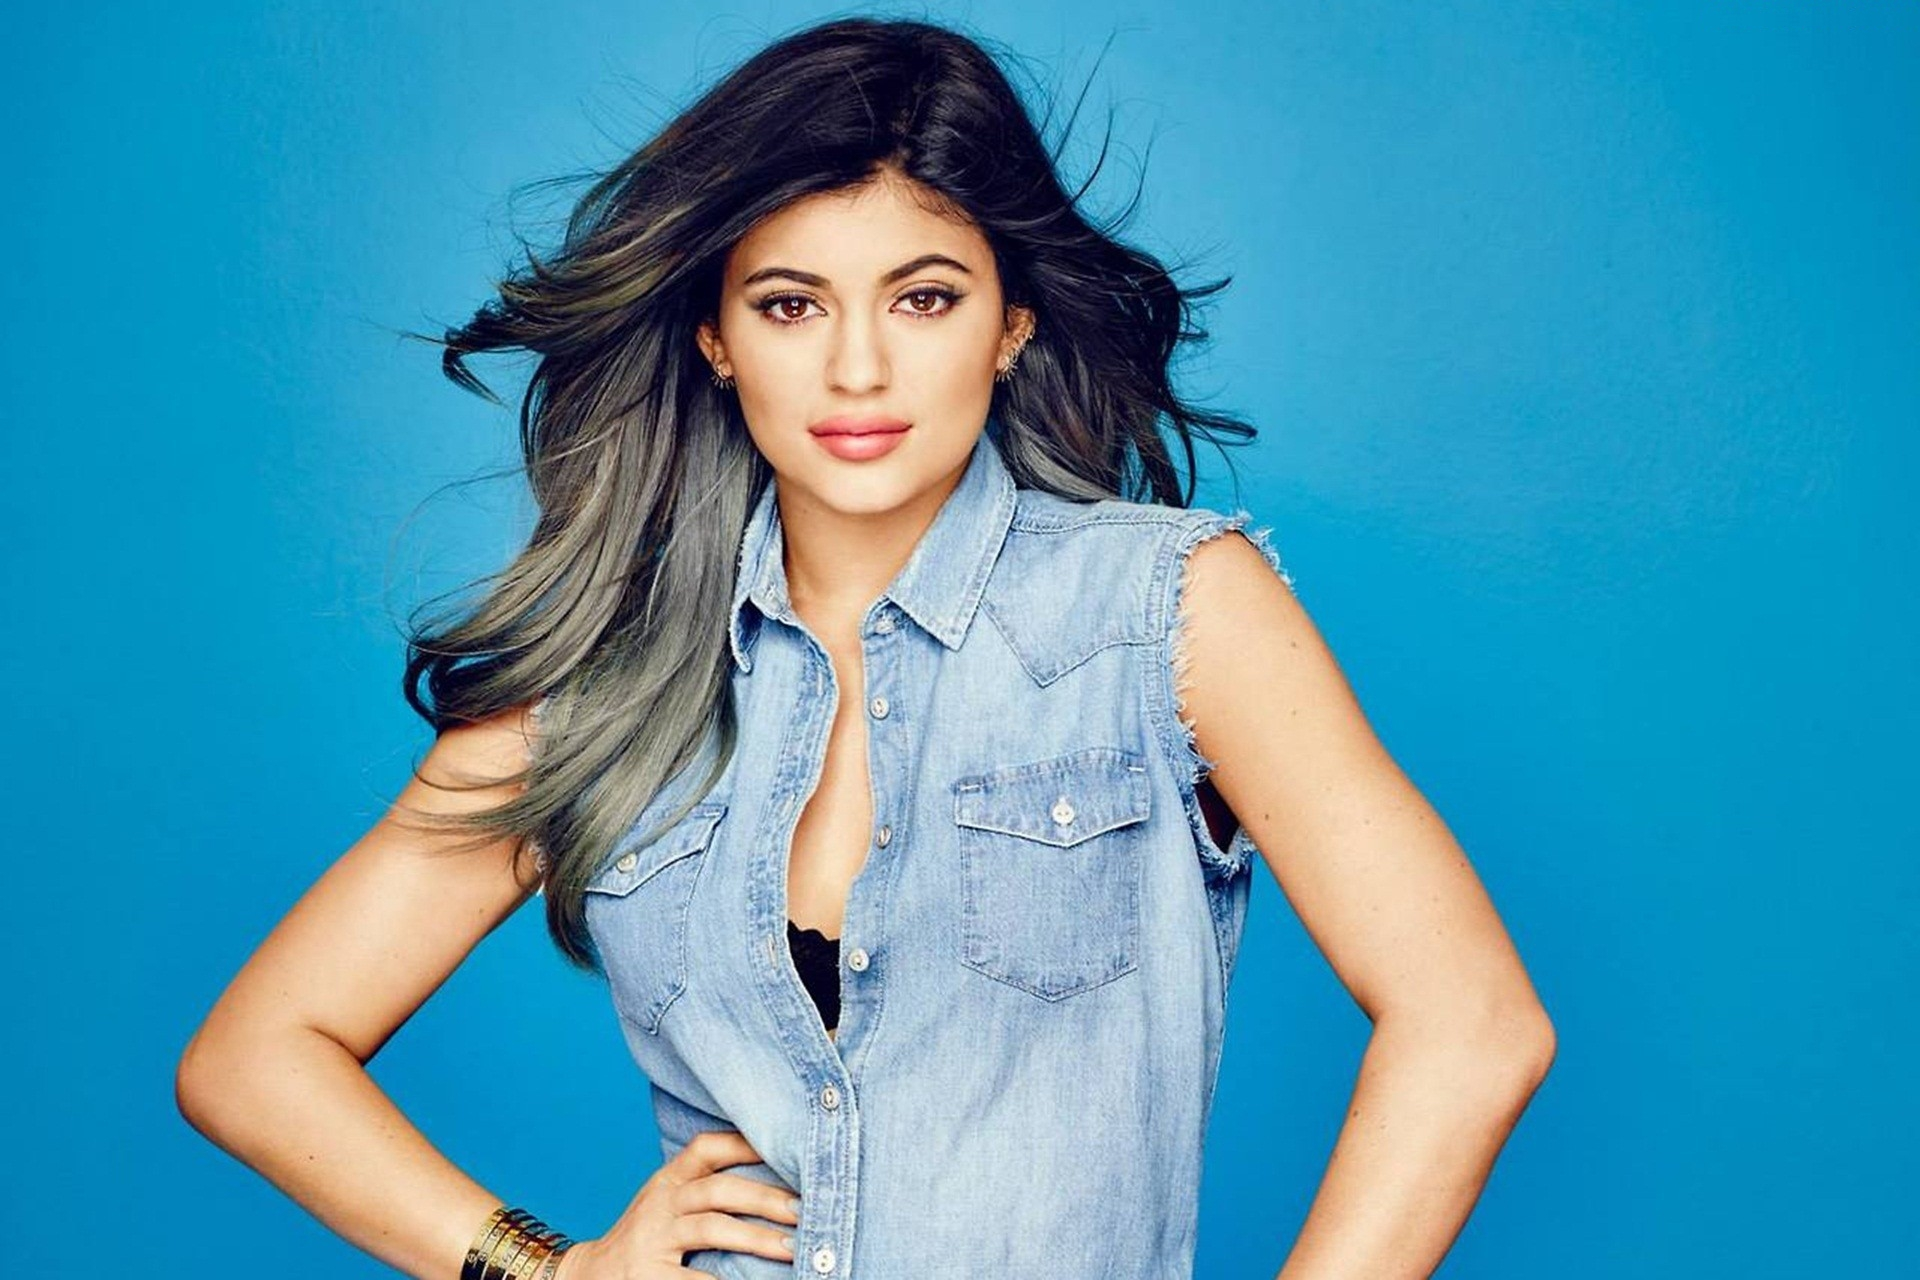 Kylie Jenner Wallpapers Images Photos Pictures Backgrounds